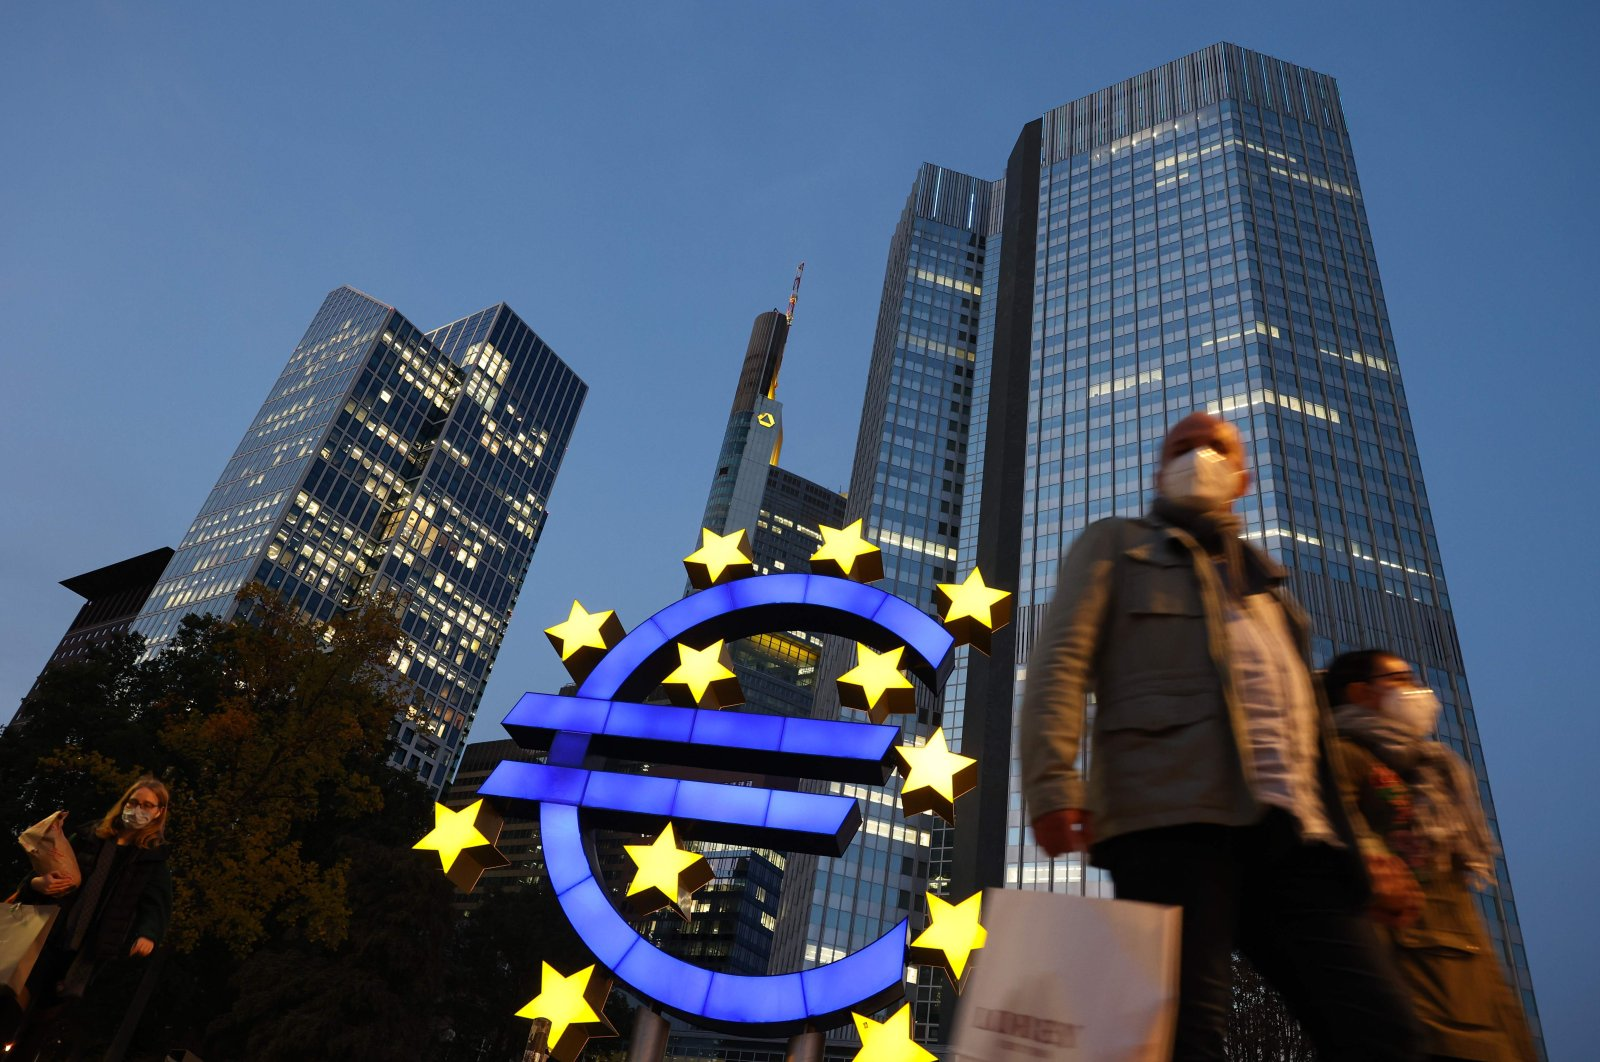 People wearing masks walk in front of the euro sign at the former European Central Bank (ECB) headquarters in the city center of Frankfurt am Main, western Germany, Oct. 21, 2020. (AFP Photo)